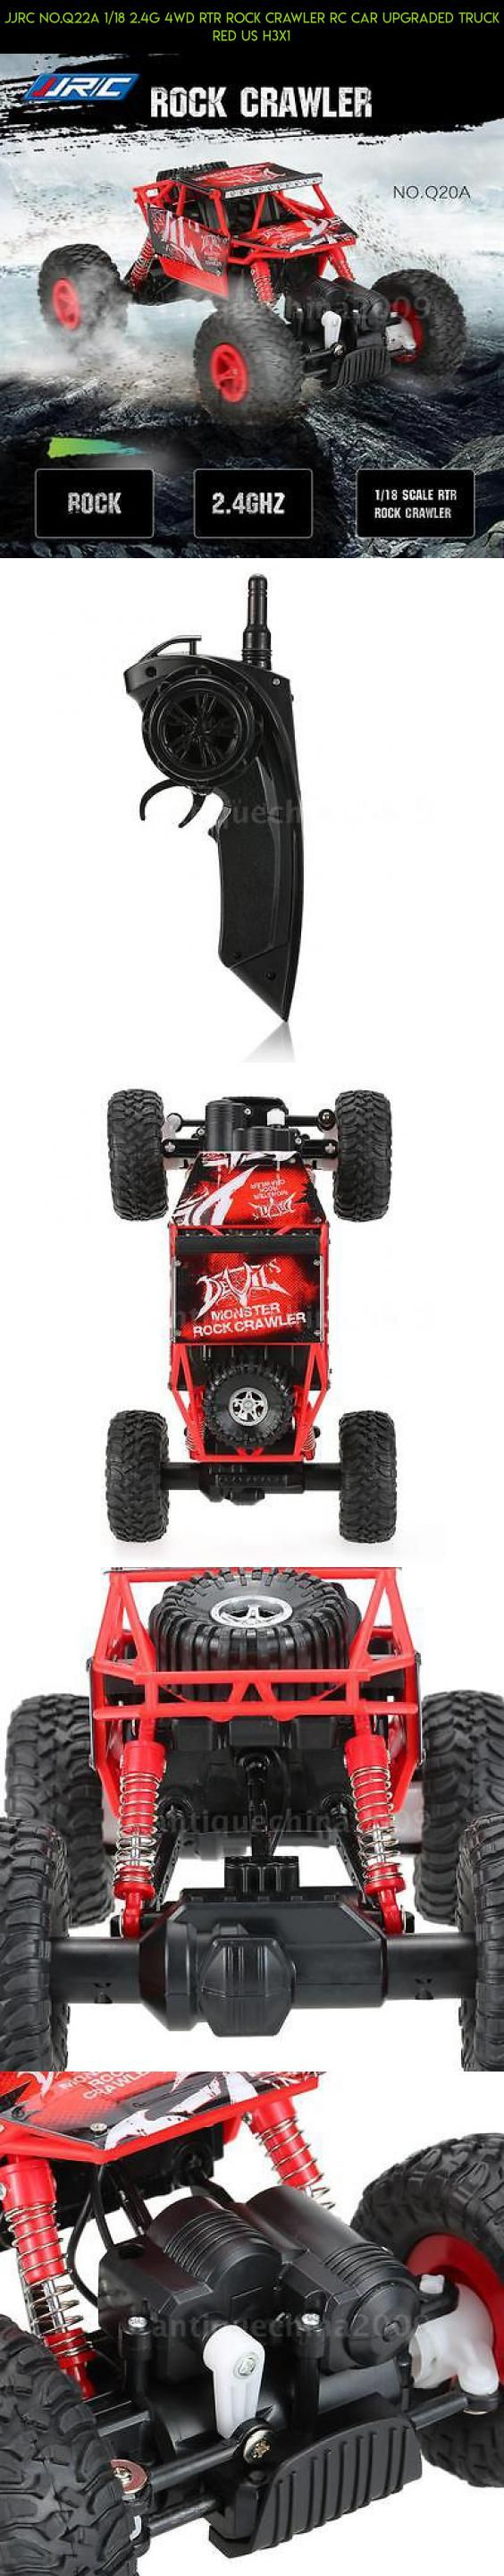 JJRC NO.Q22A 1/18 2.4G 4WD RTR Rock Crawler RC Car Upgraded Truck Red US H3X1 #gadgets #jjrc #fpv #shopping #drone #crawler #parts #racing #plans #products #technology #tech #rock #kit #camera